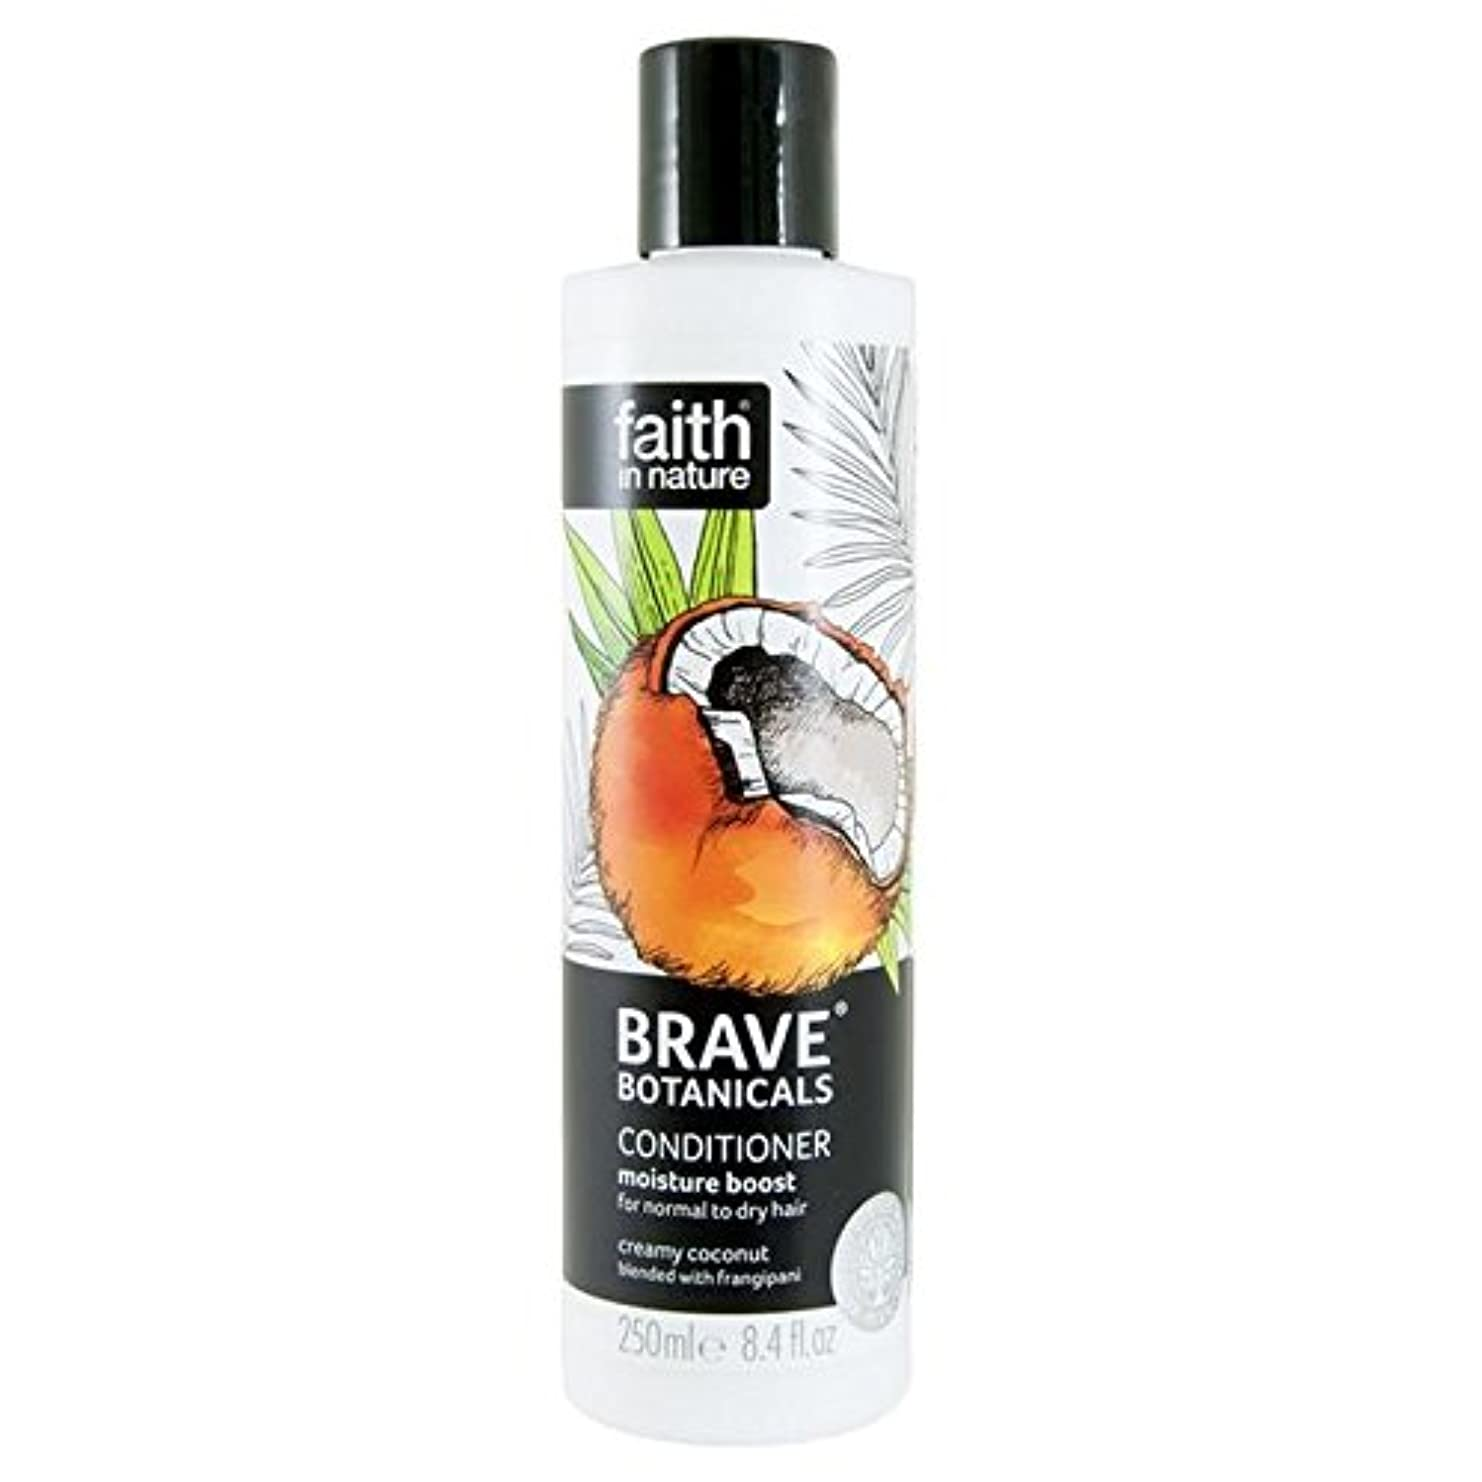 弾性落ち着いて可動Brave Botanicals Coconut & Frangipani Moisture Boost Conditioner 250ml (Pack of 4) - (Faith In Nature) 勇敢な植物ココナッツ...